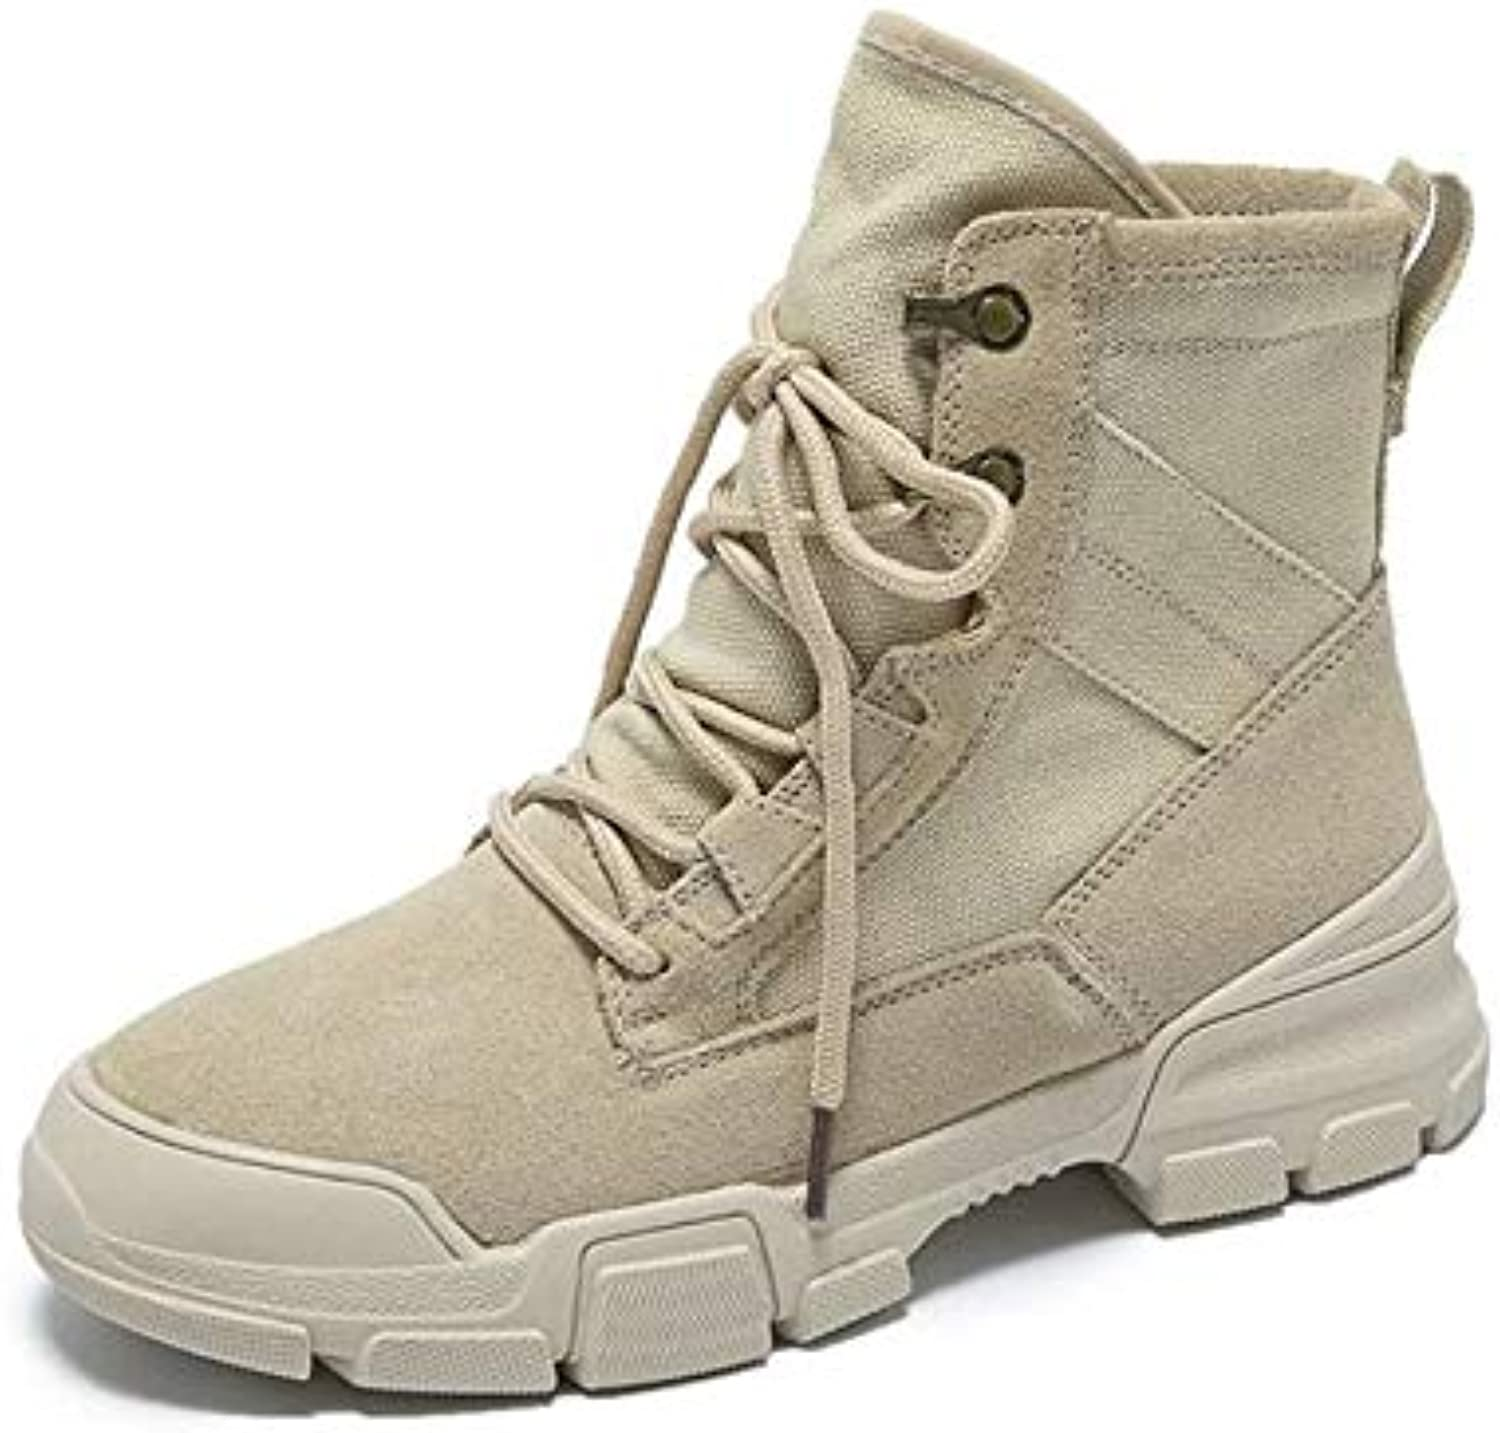 Meimeioo Fashion Women Boots Style High-top Military Ankle shoes Casual Sport shoes